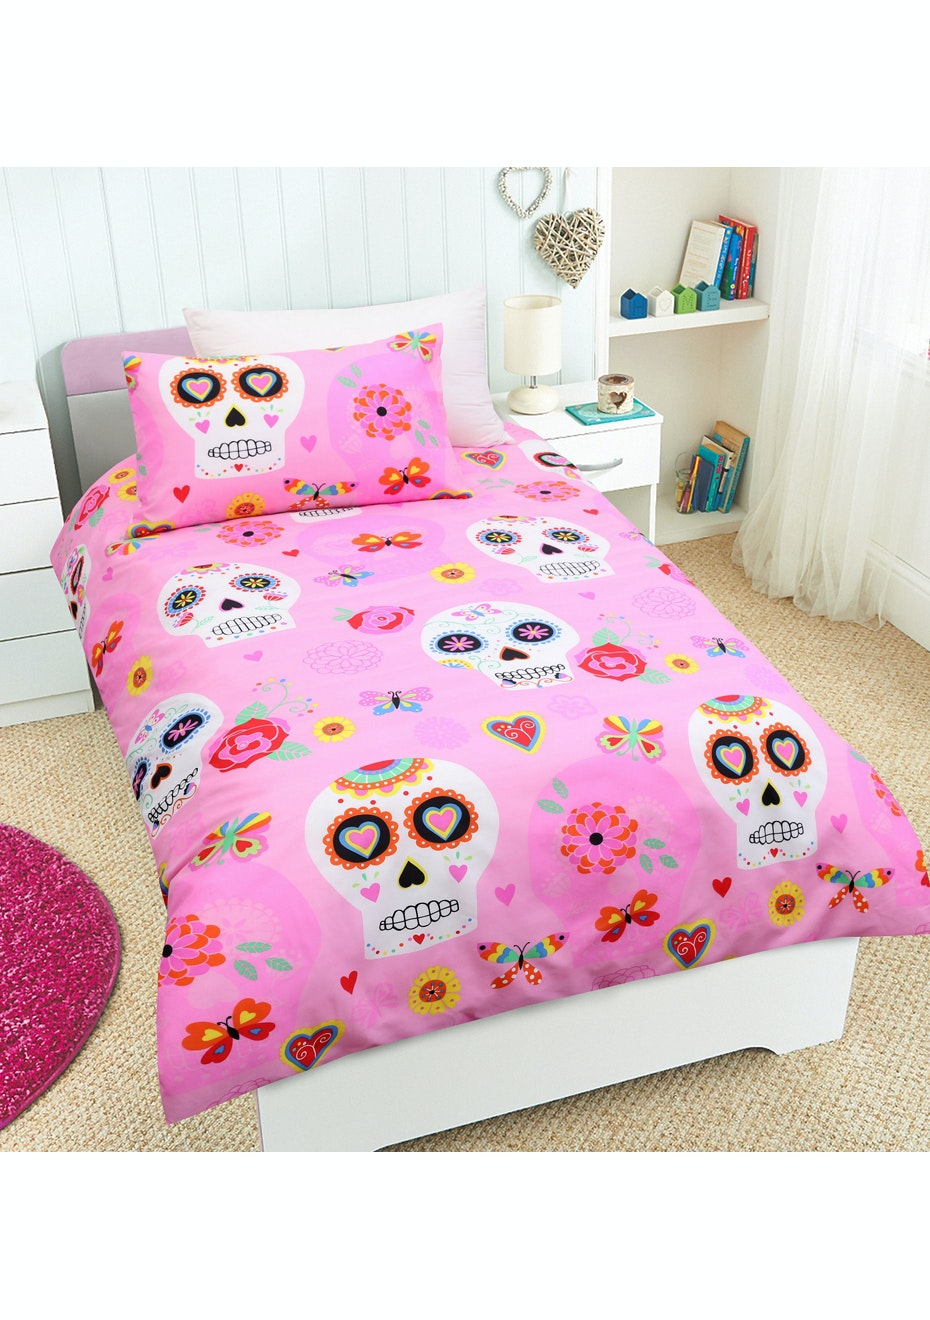 Candy Skulls Glow in the Dark Quilt Cover Set - Double Bed